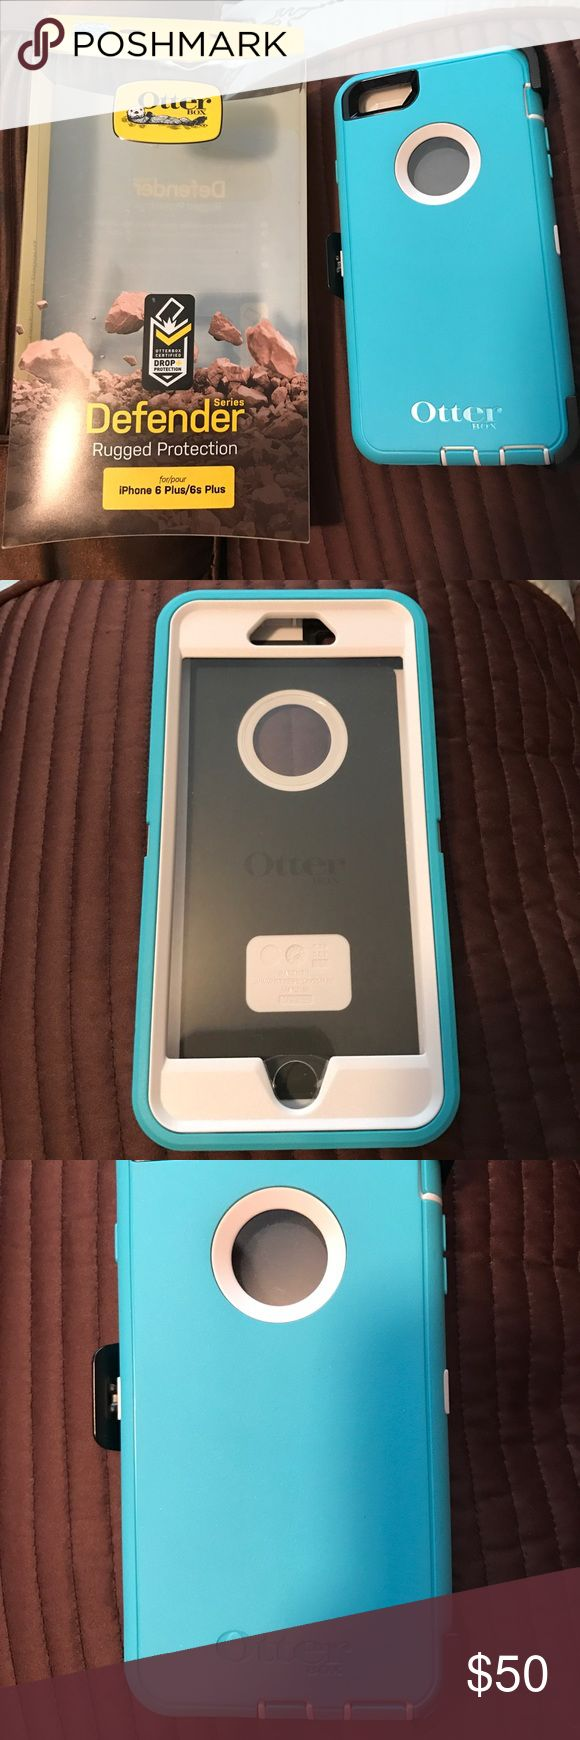 iPhone 6 Plus 6S Plus Defender Otter Box New! Brand new still in package! iPhone 6 Plus/6S Plus Defender Otter box phone case. Never used and brand new! Colors are: white case with teal outer cover. Includes belt clip. OtterBox Accessories Phone Cases